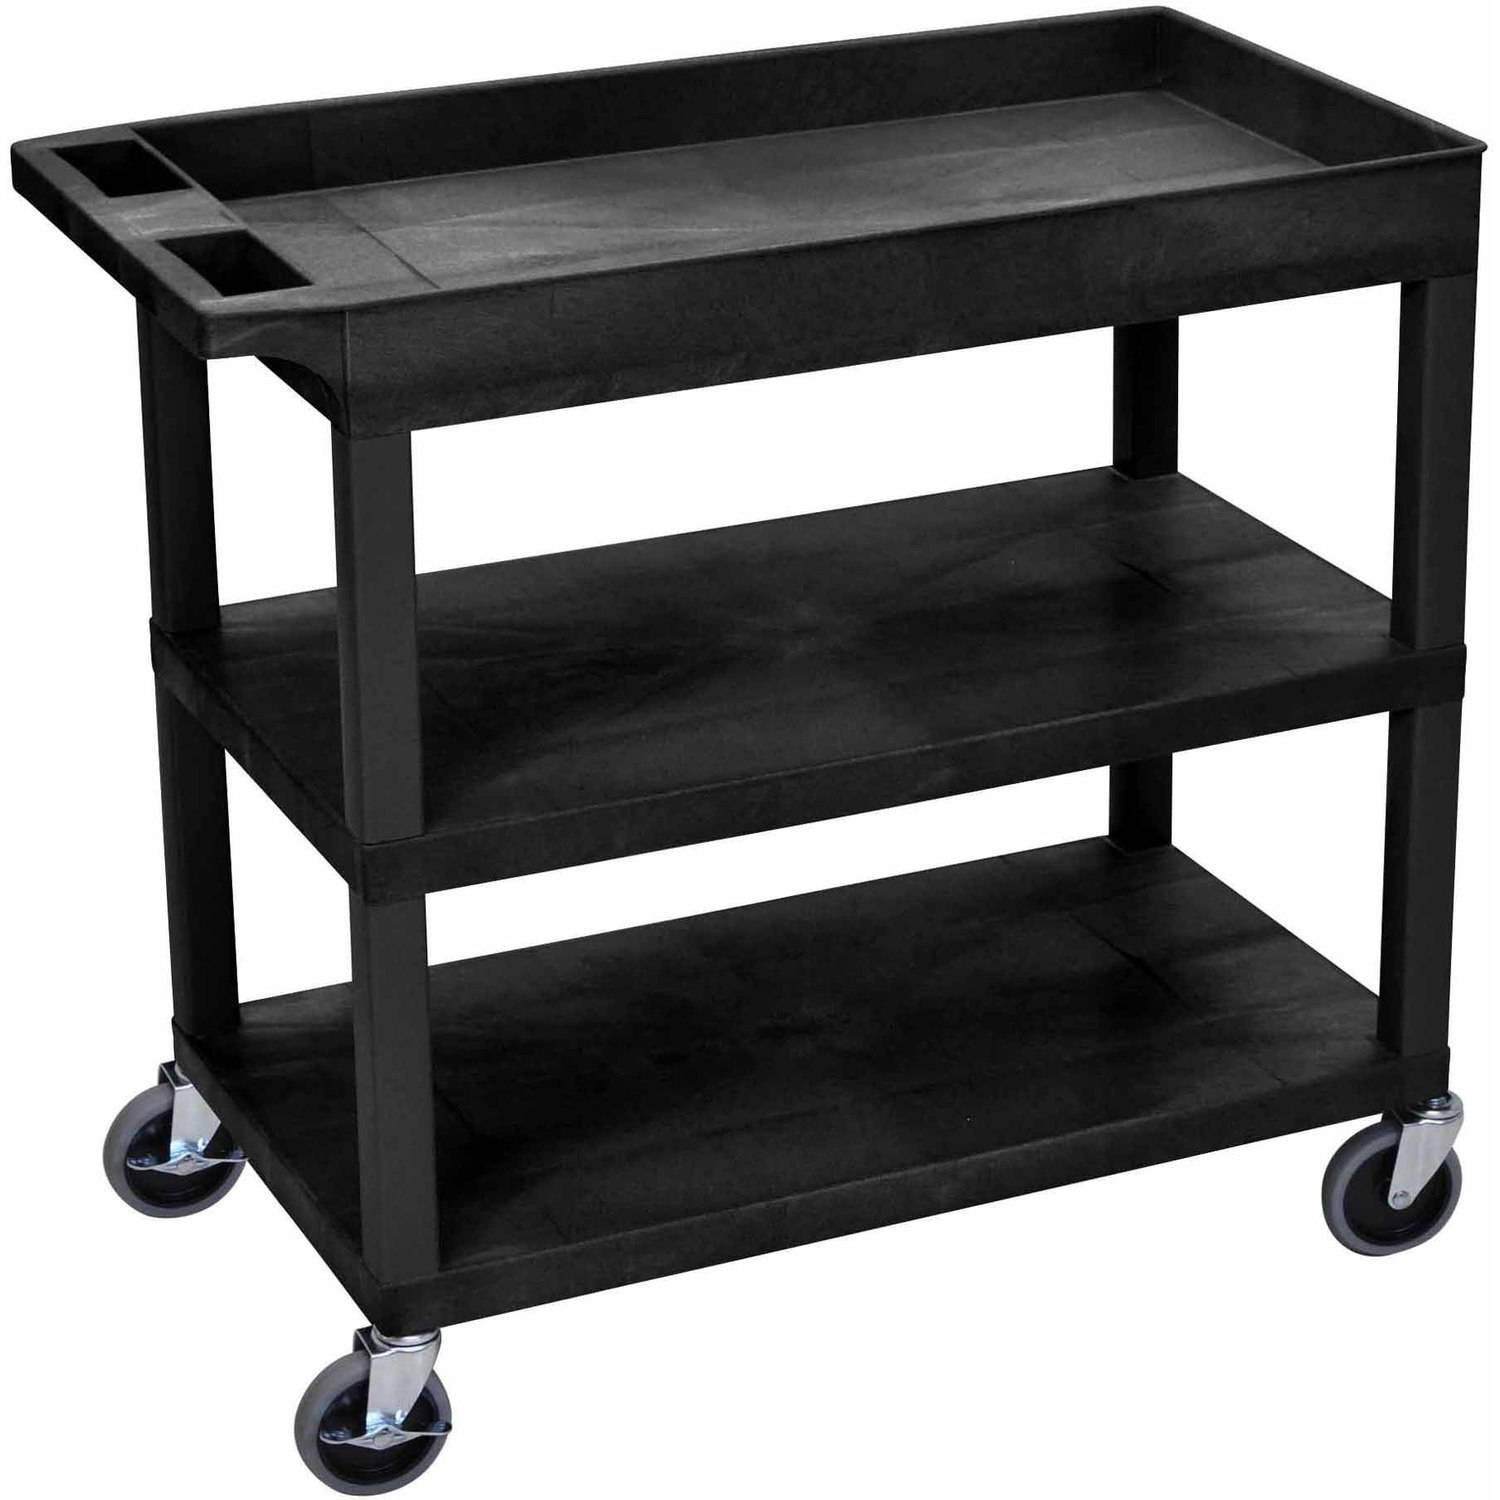 Luxor High Capacity Cart with 2 Flat and 1 Tub Shelf